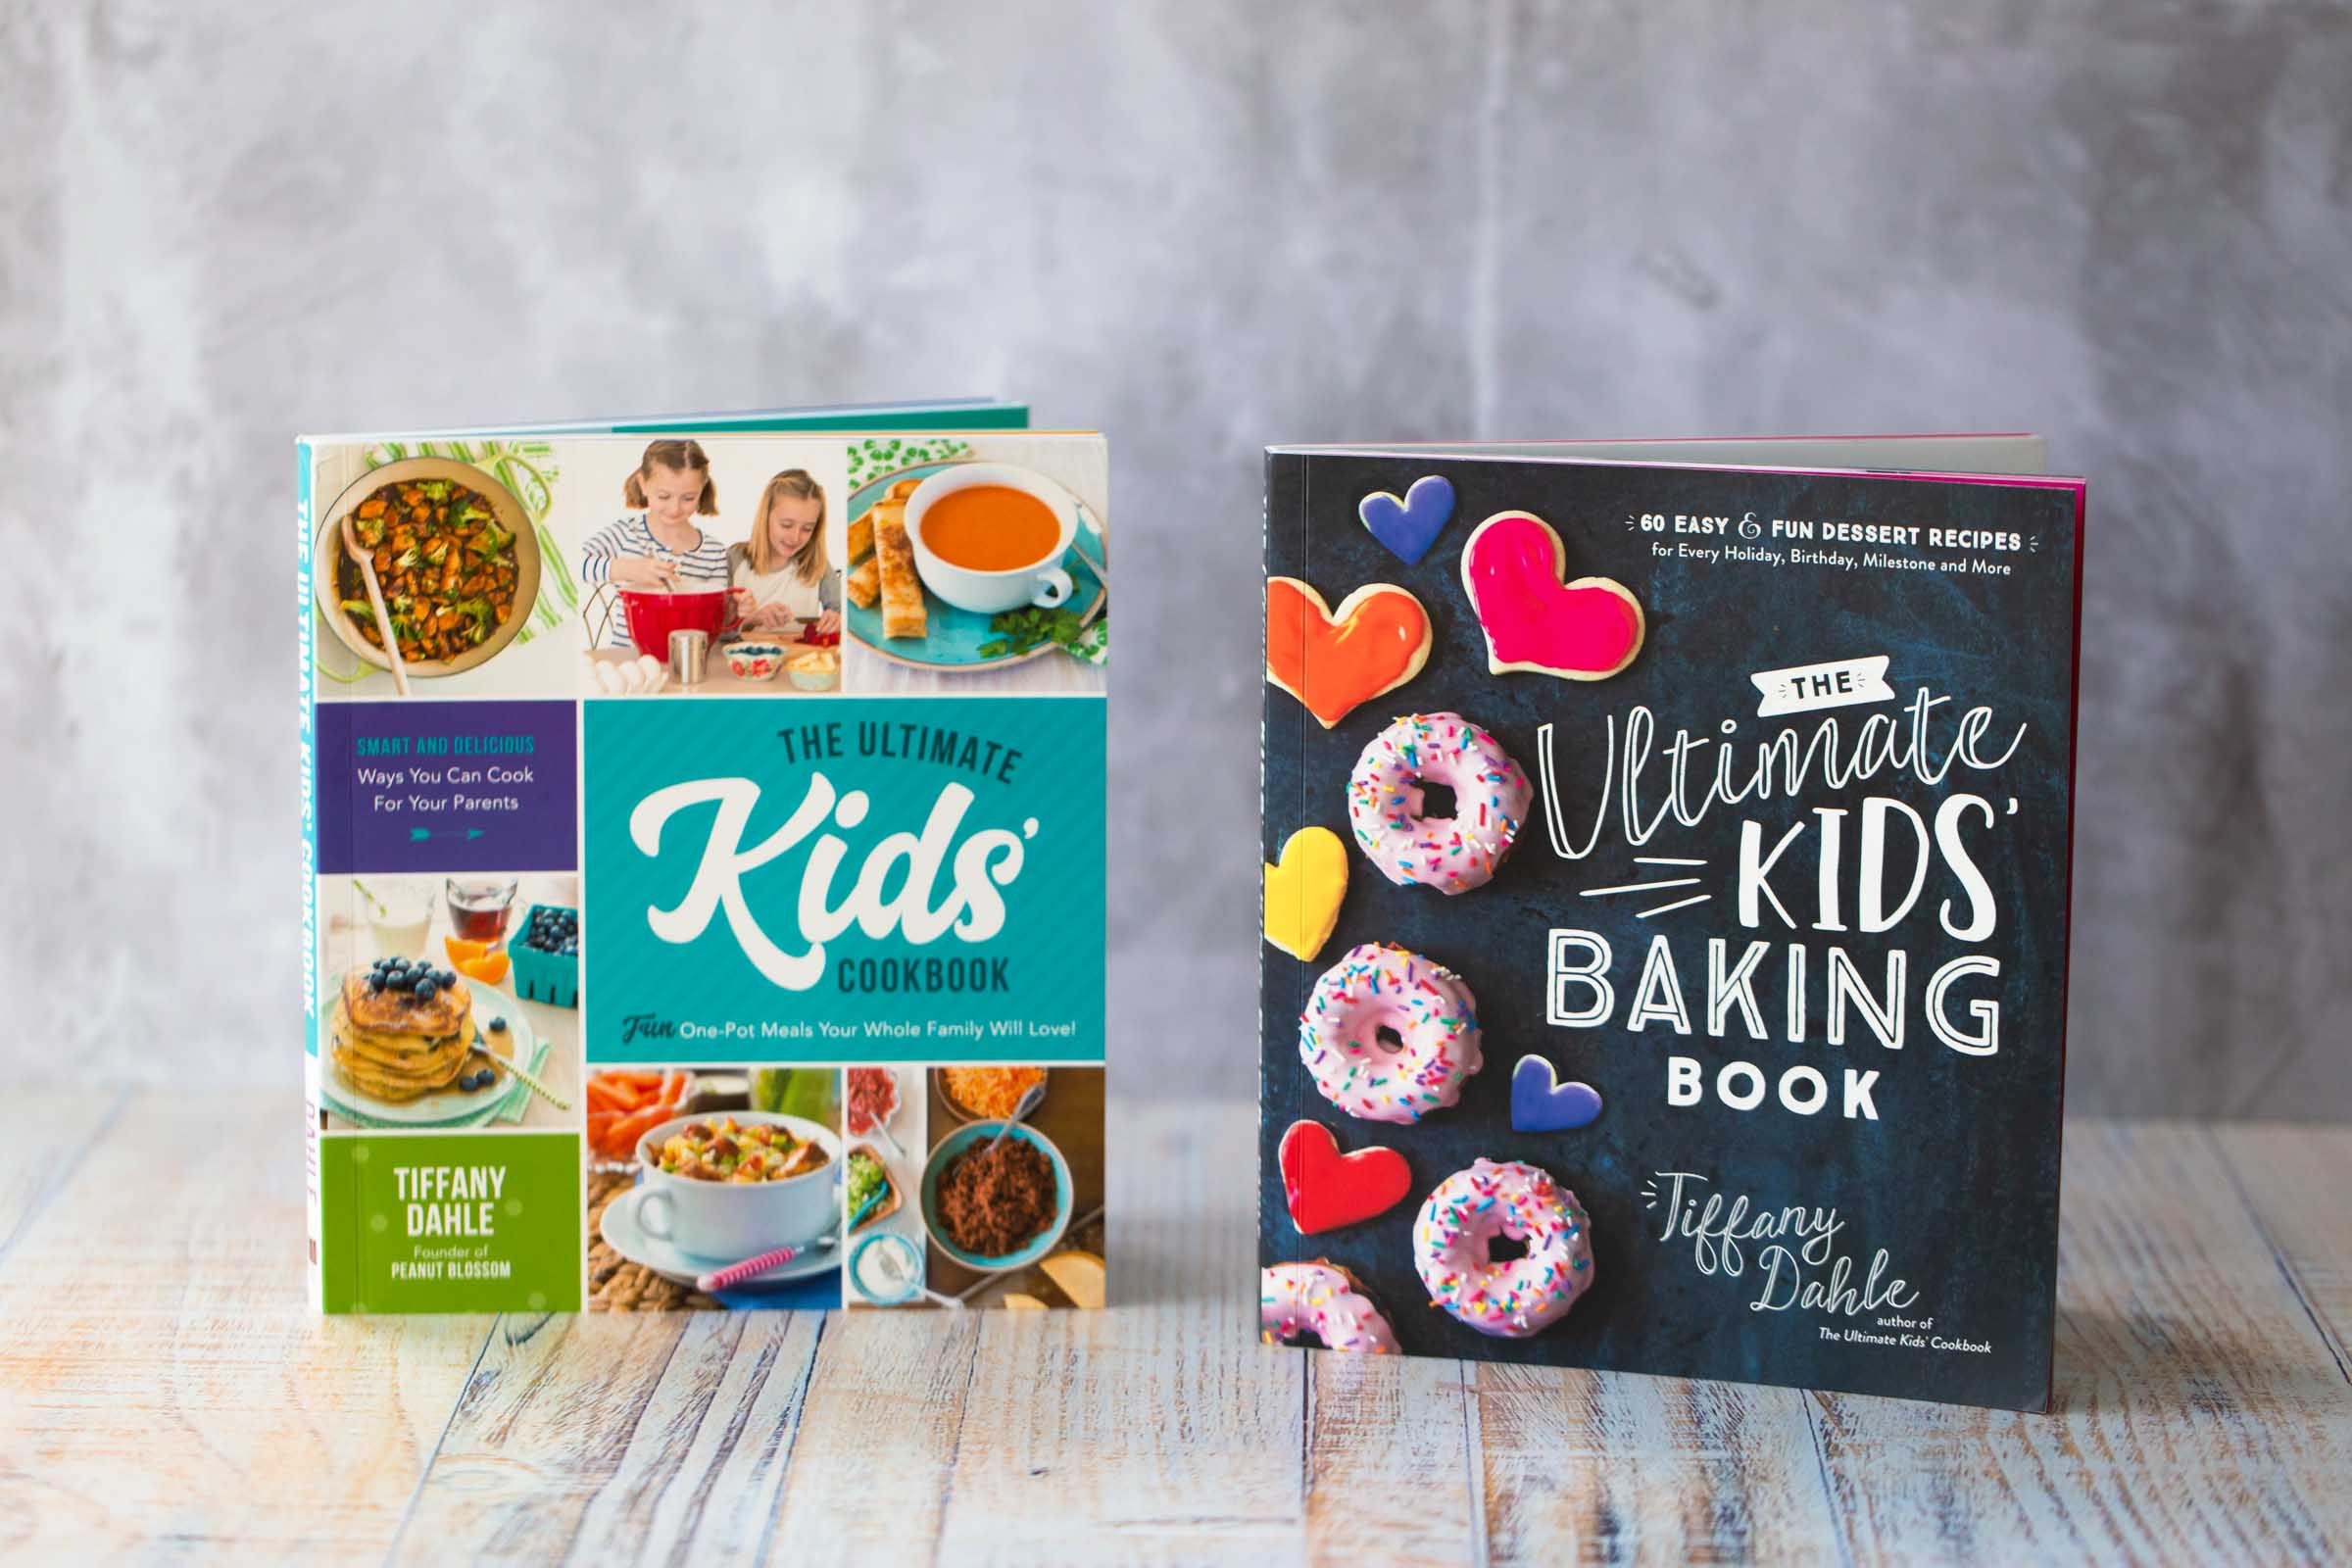 The covers of both The Ultimate Kids' Cookbook by Tiffany Dahle and The Ultimate Kids' Baking Book by Tiffany Dahle